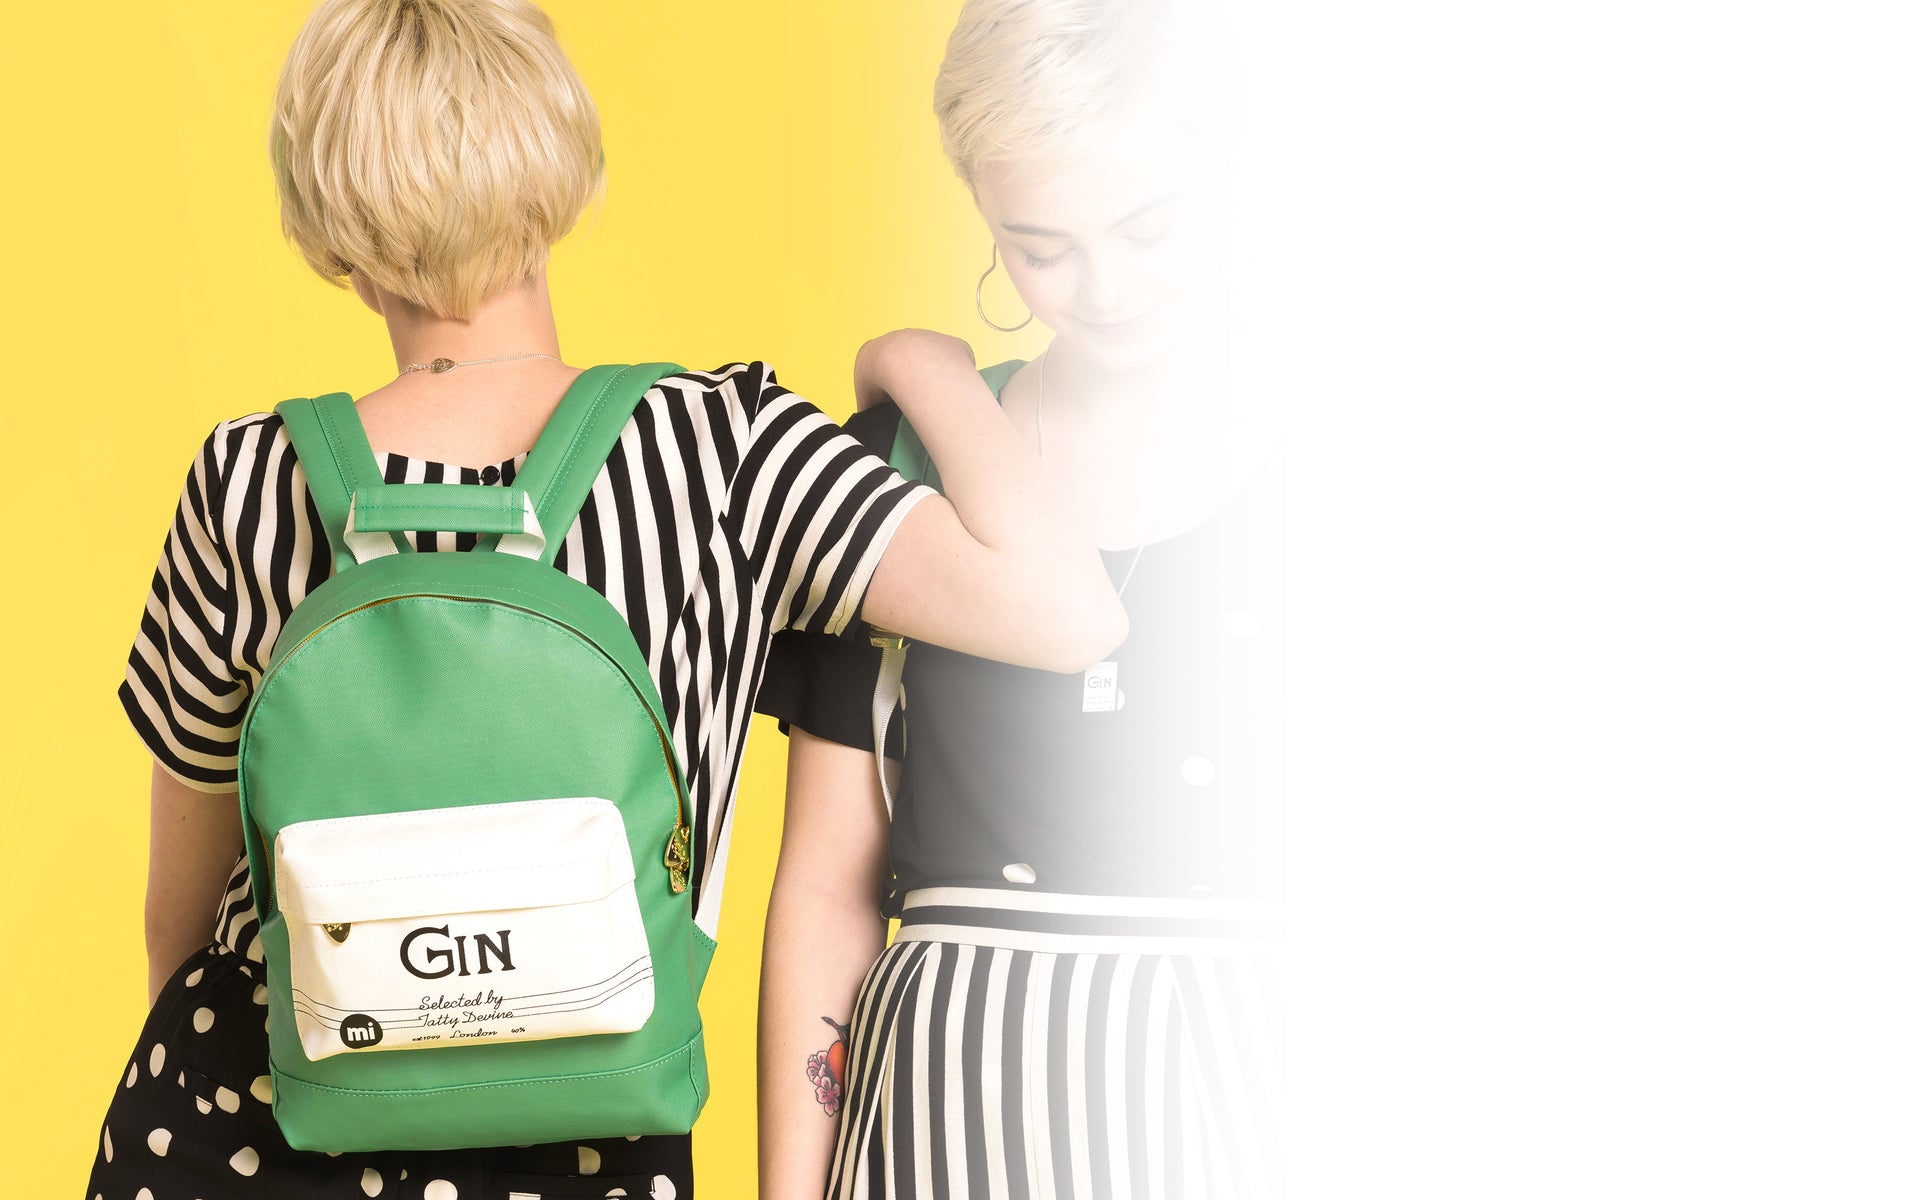 mi-pac-gold-mini-backpack-gin